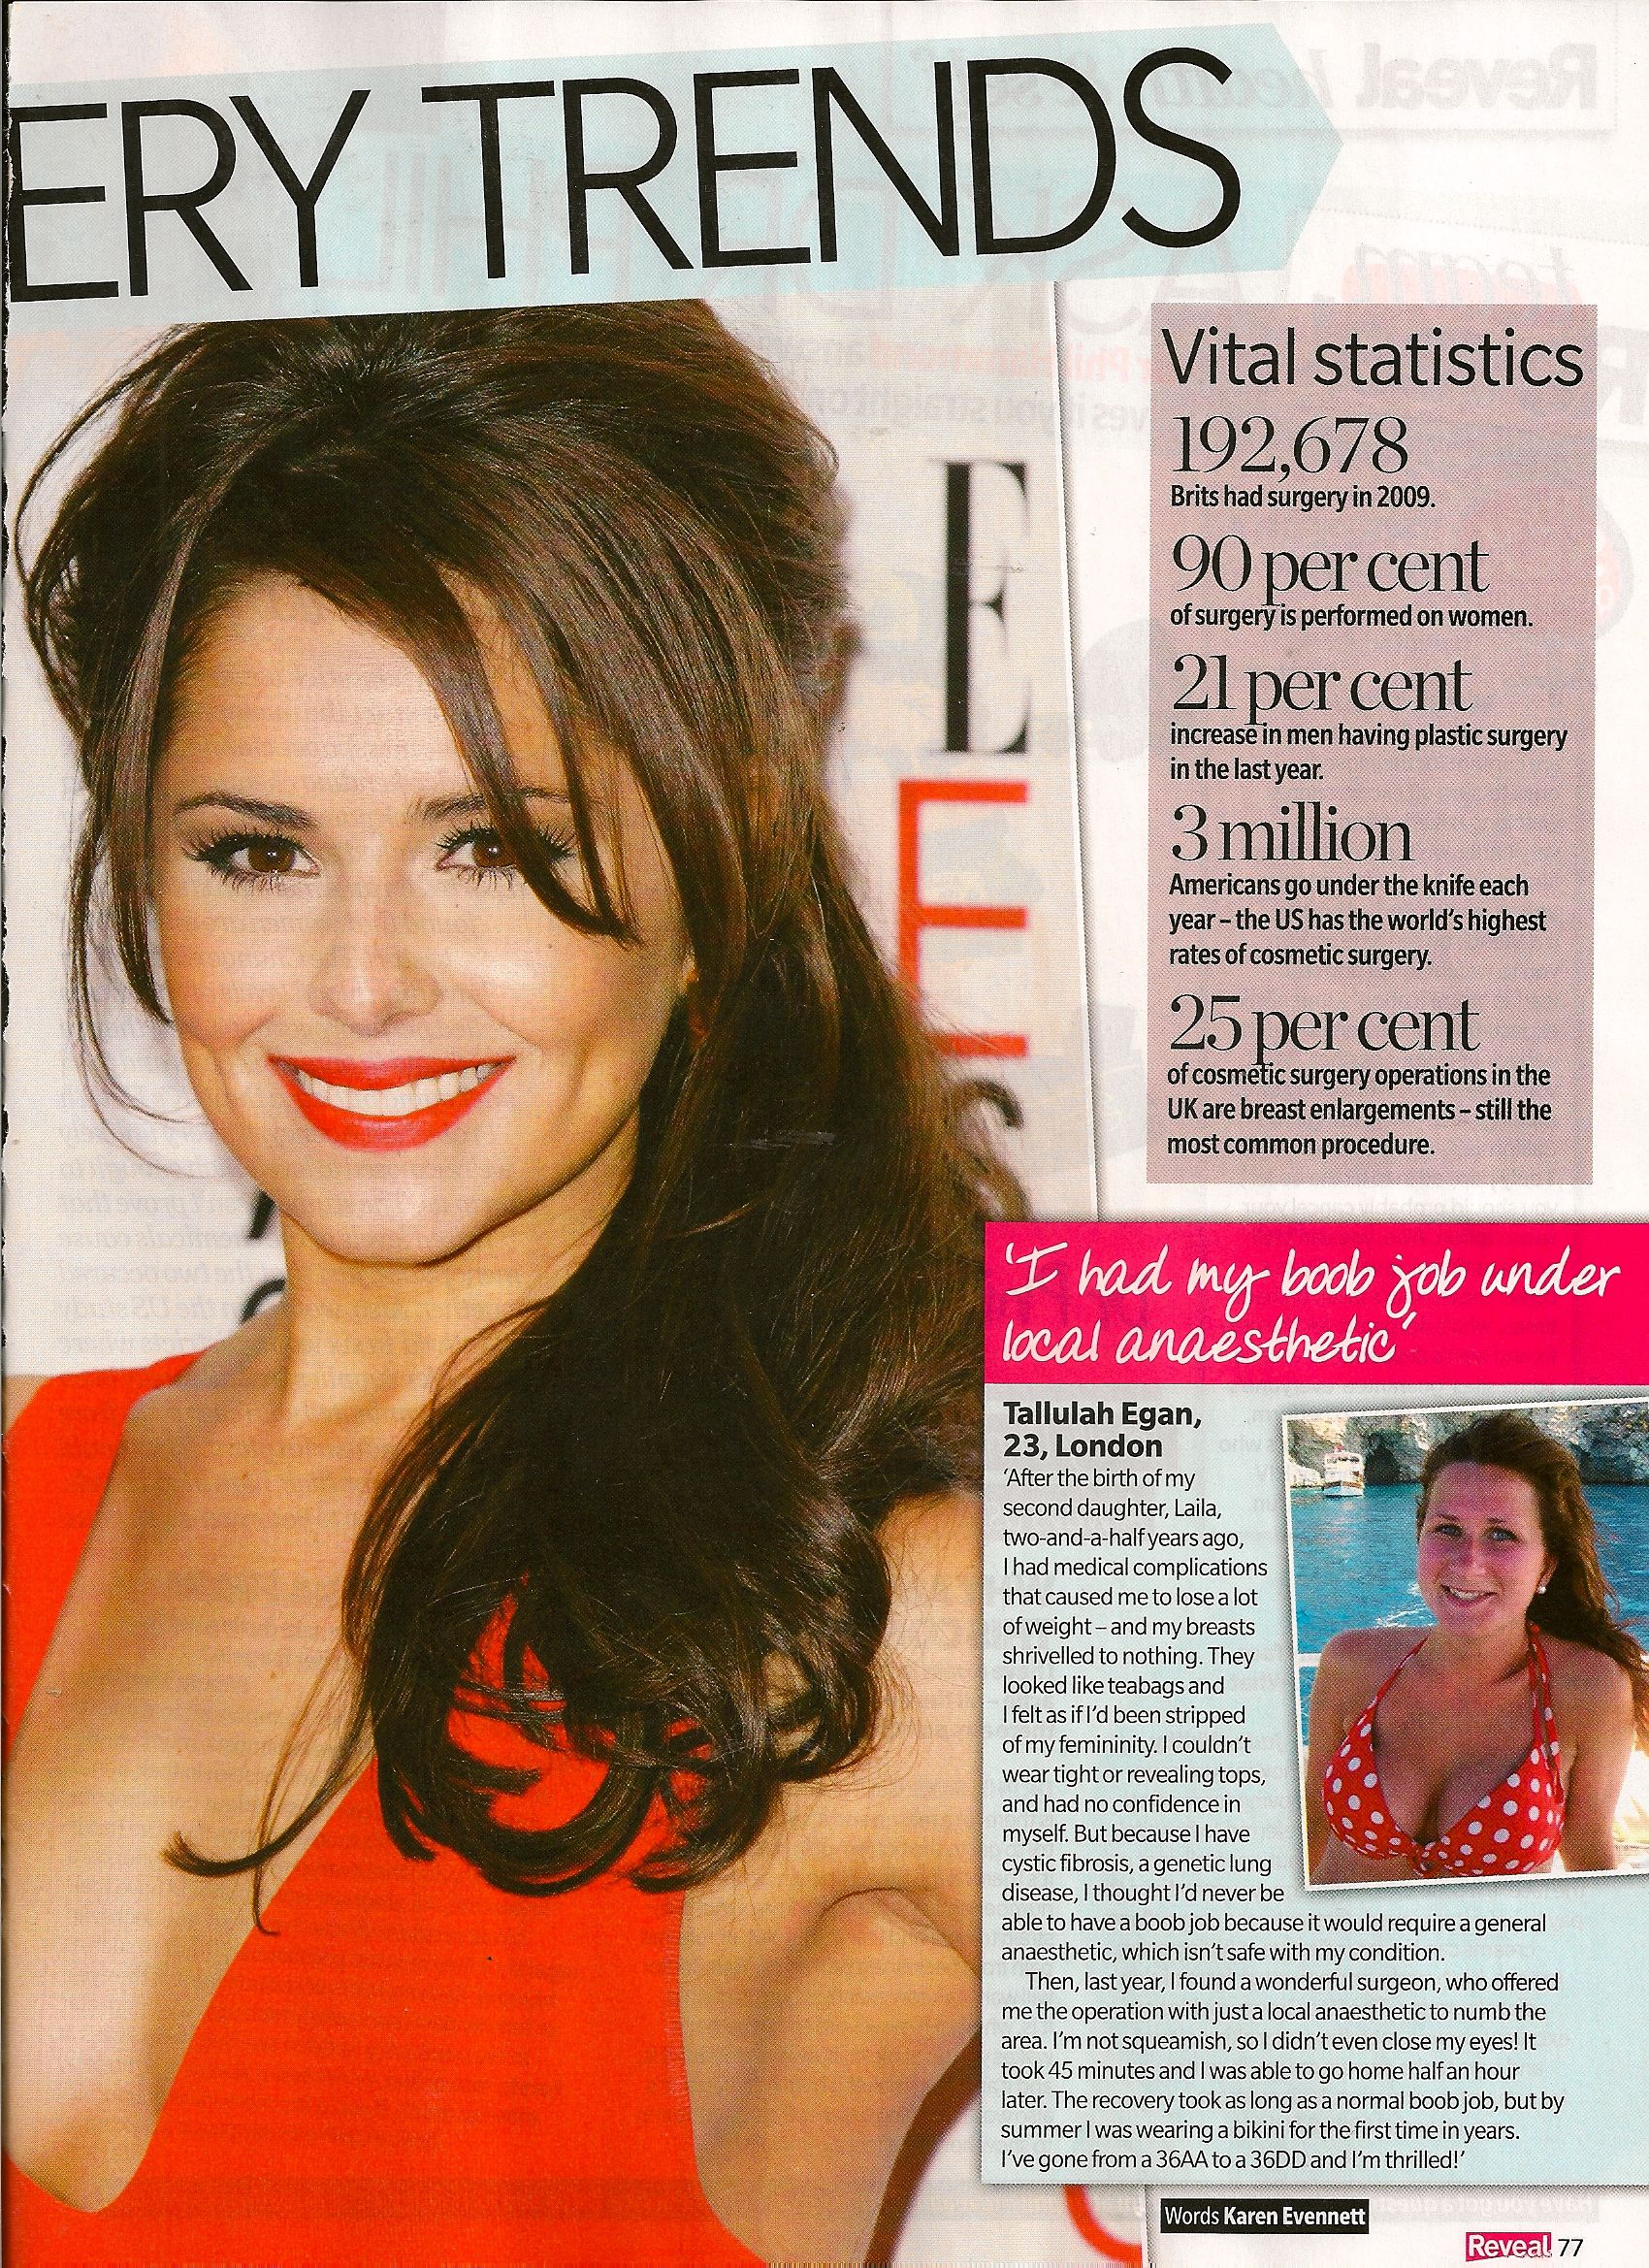 I had a boob job under local anaesthetic! Reveal Magazine